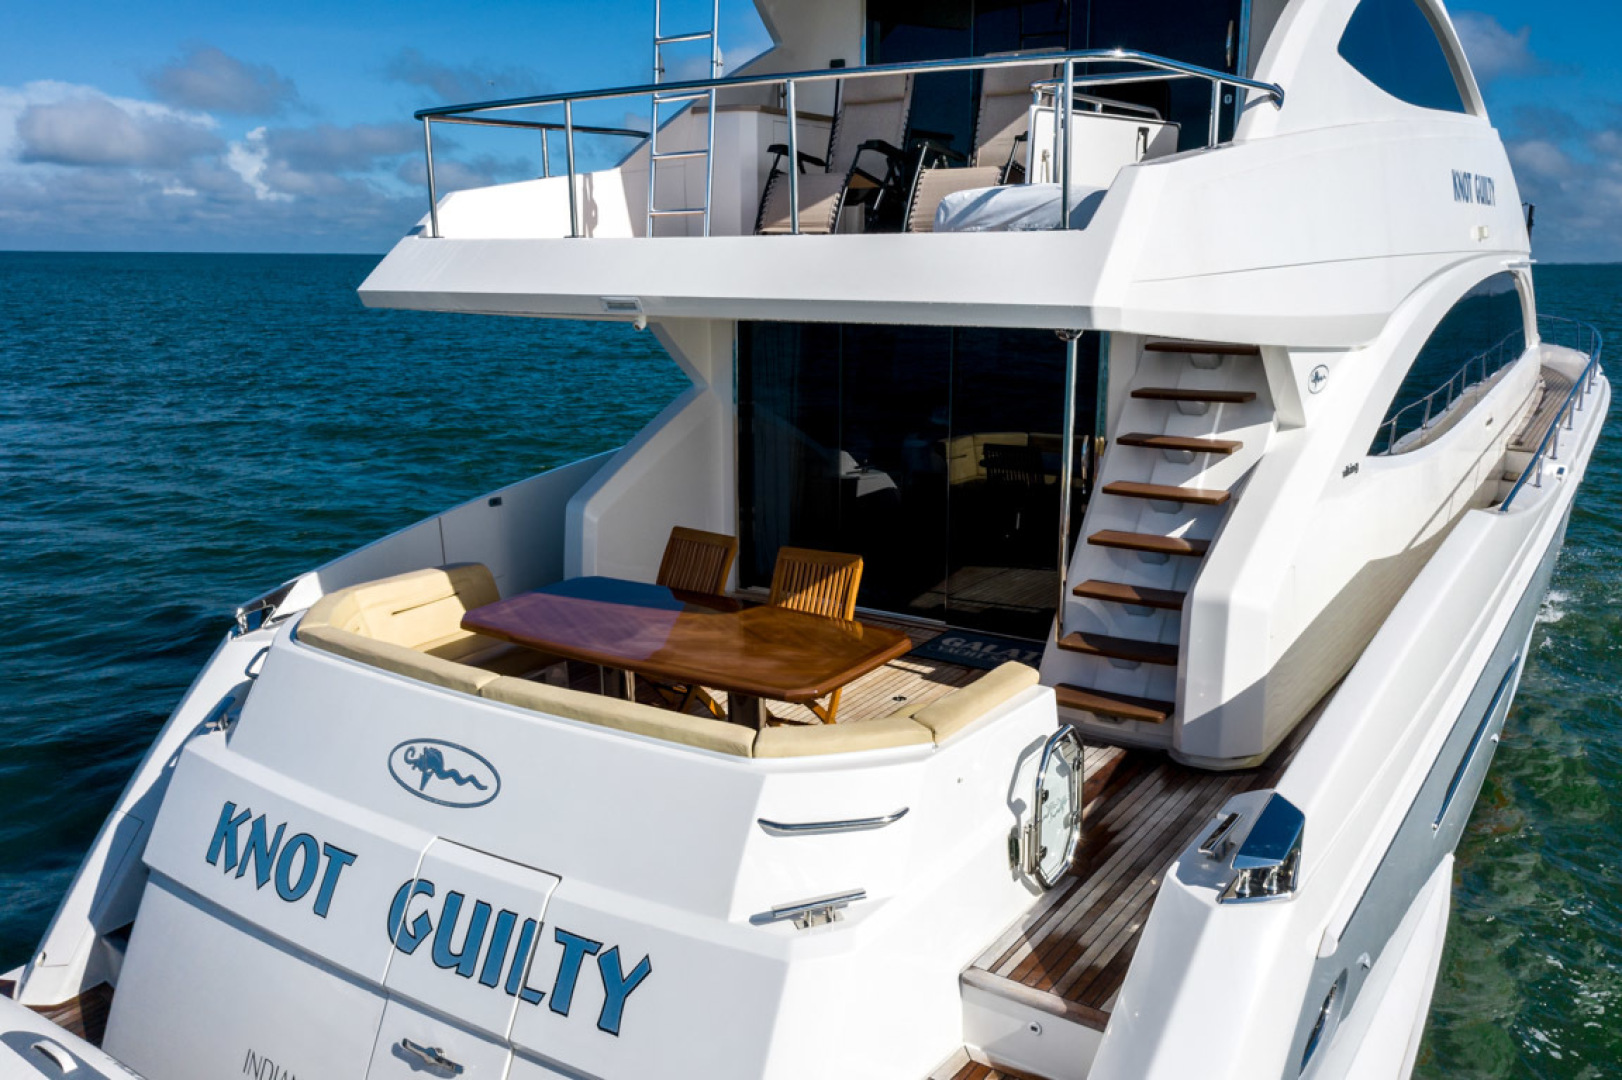 Viking-75 Motor Yacht 2015-Knot Guilty Indian Rocks Beach-Florida-United States-2015 Viking 75 MY Cockpit -1491327 | Thumbnail